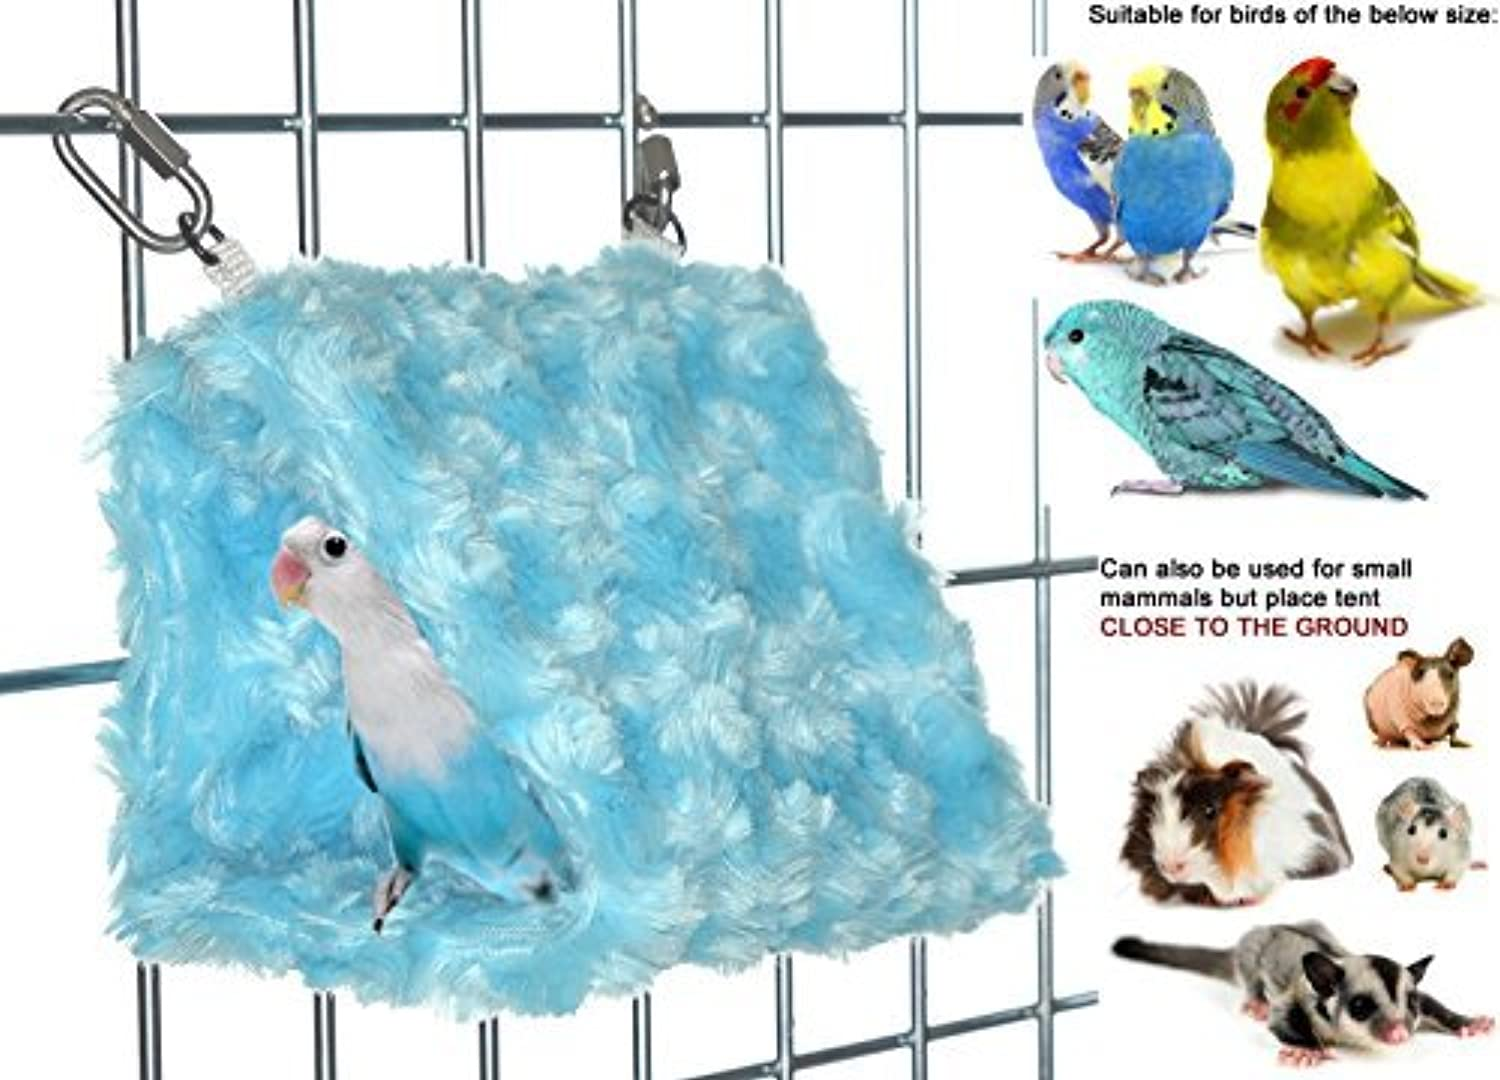 Cozy Small Bird Tent Hideaway  Made in the USA (Sky bluee, Single Tent) by Avianweb